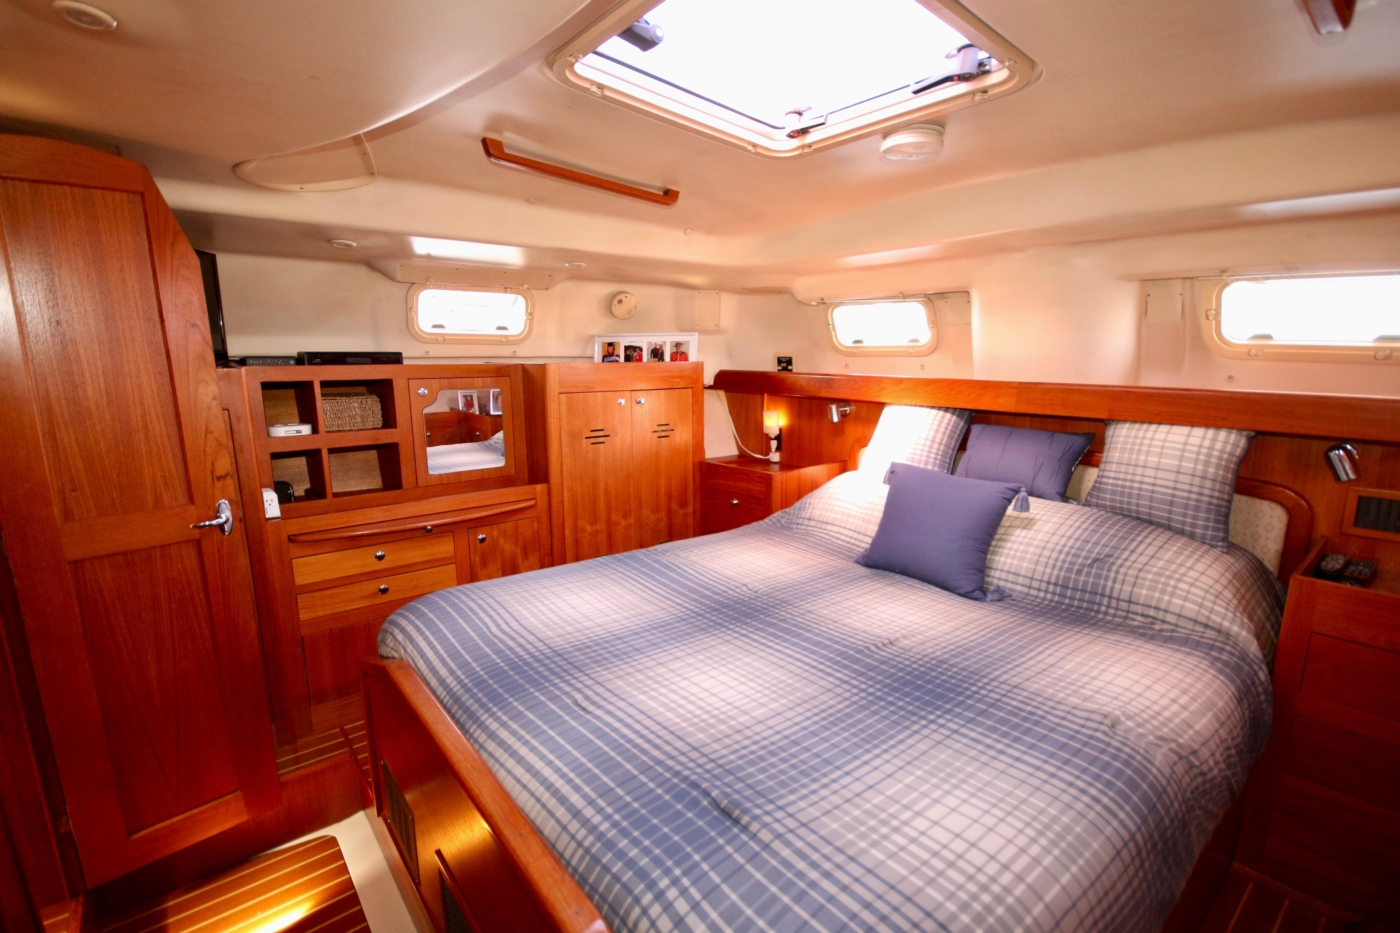 2004 Hunter Passage 420, Master stateroom view to starboard